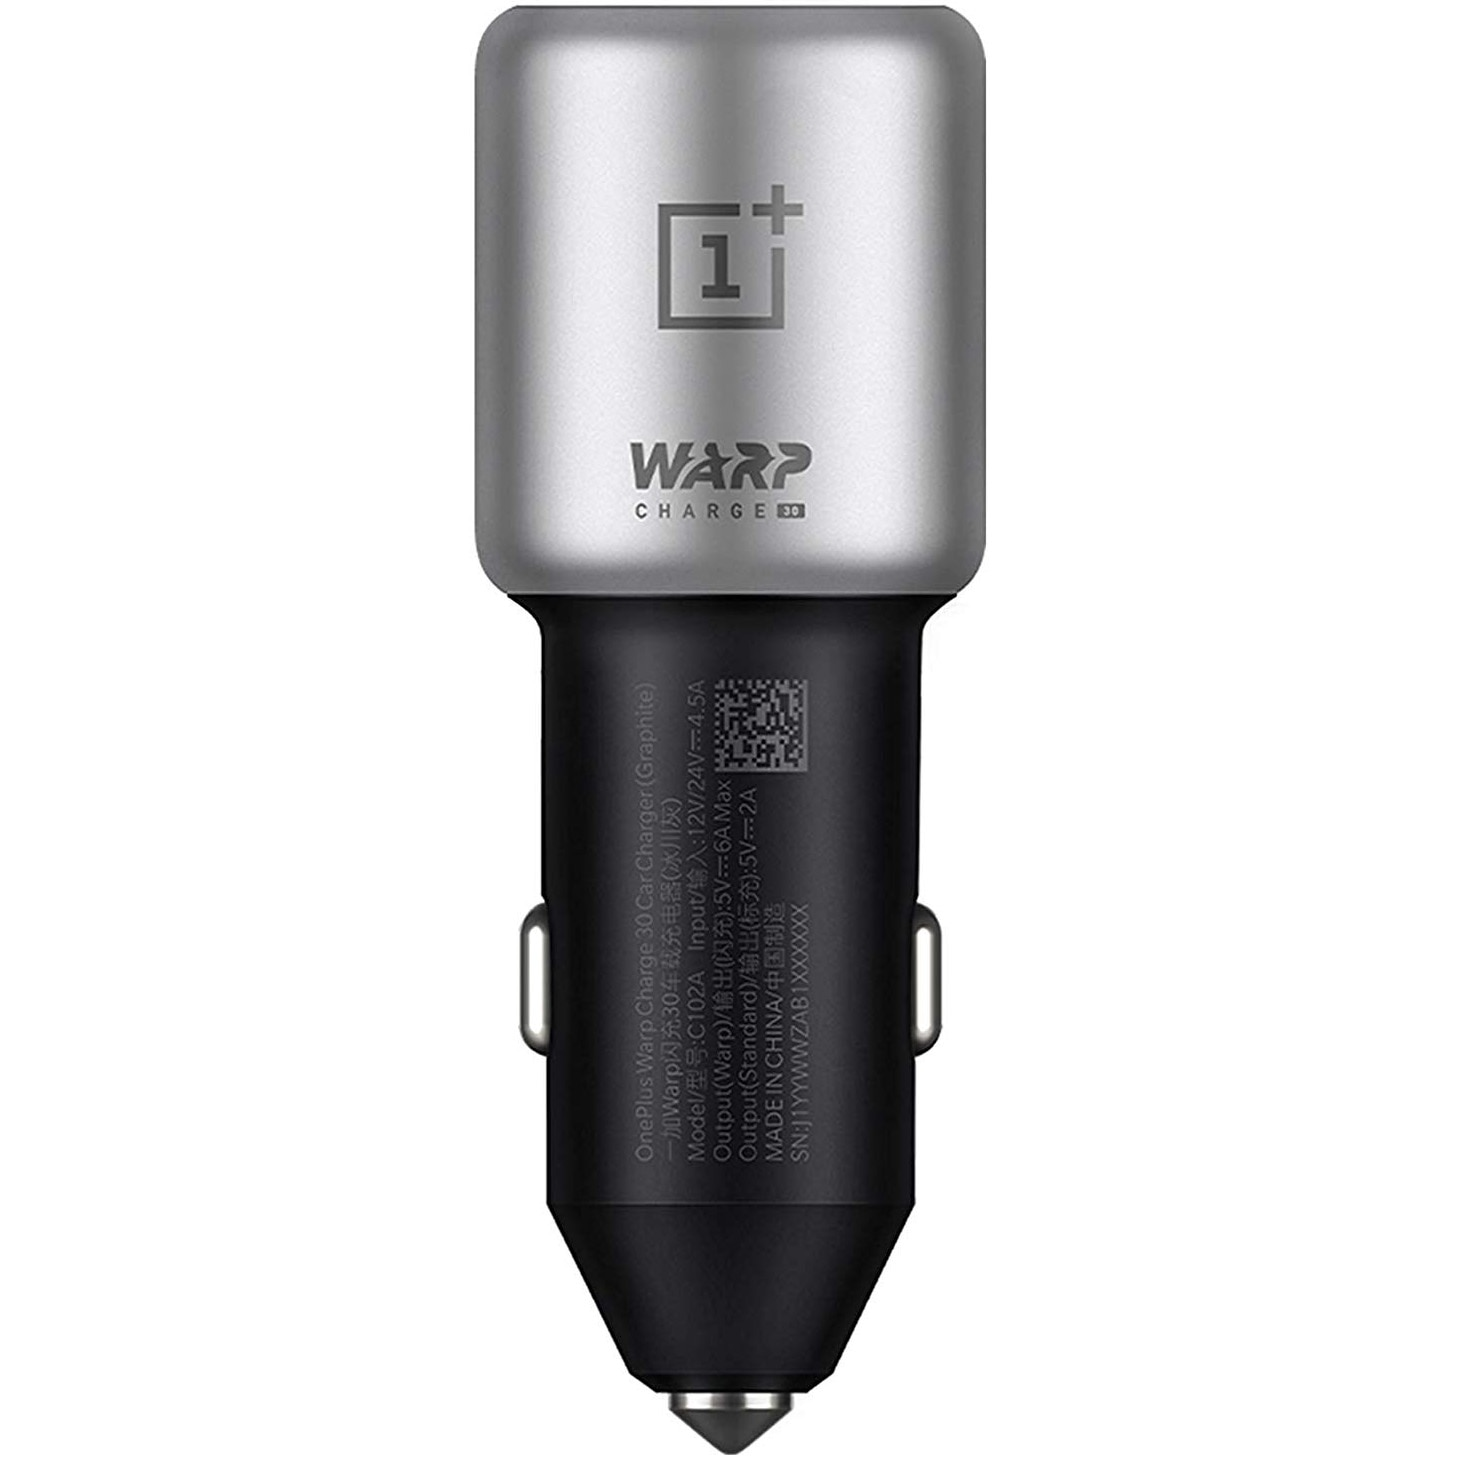 Fotografie Incarcator auto OnePlus Warp Charge 30 Car Charger, Graphite